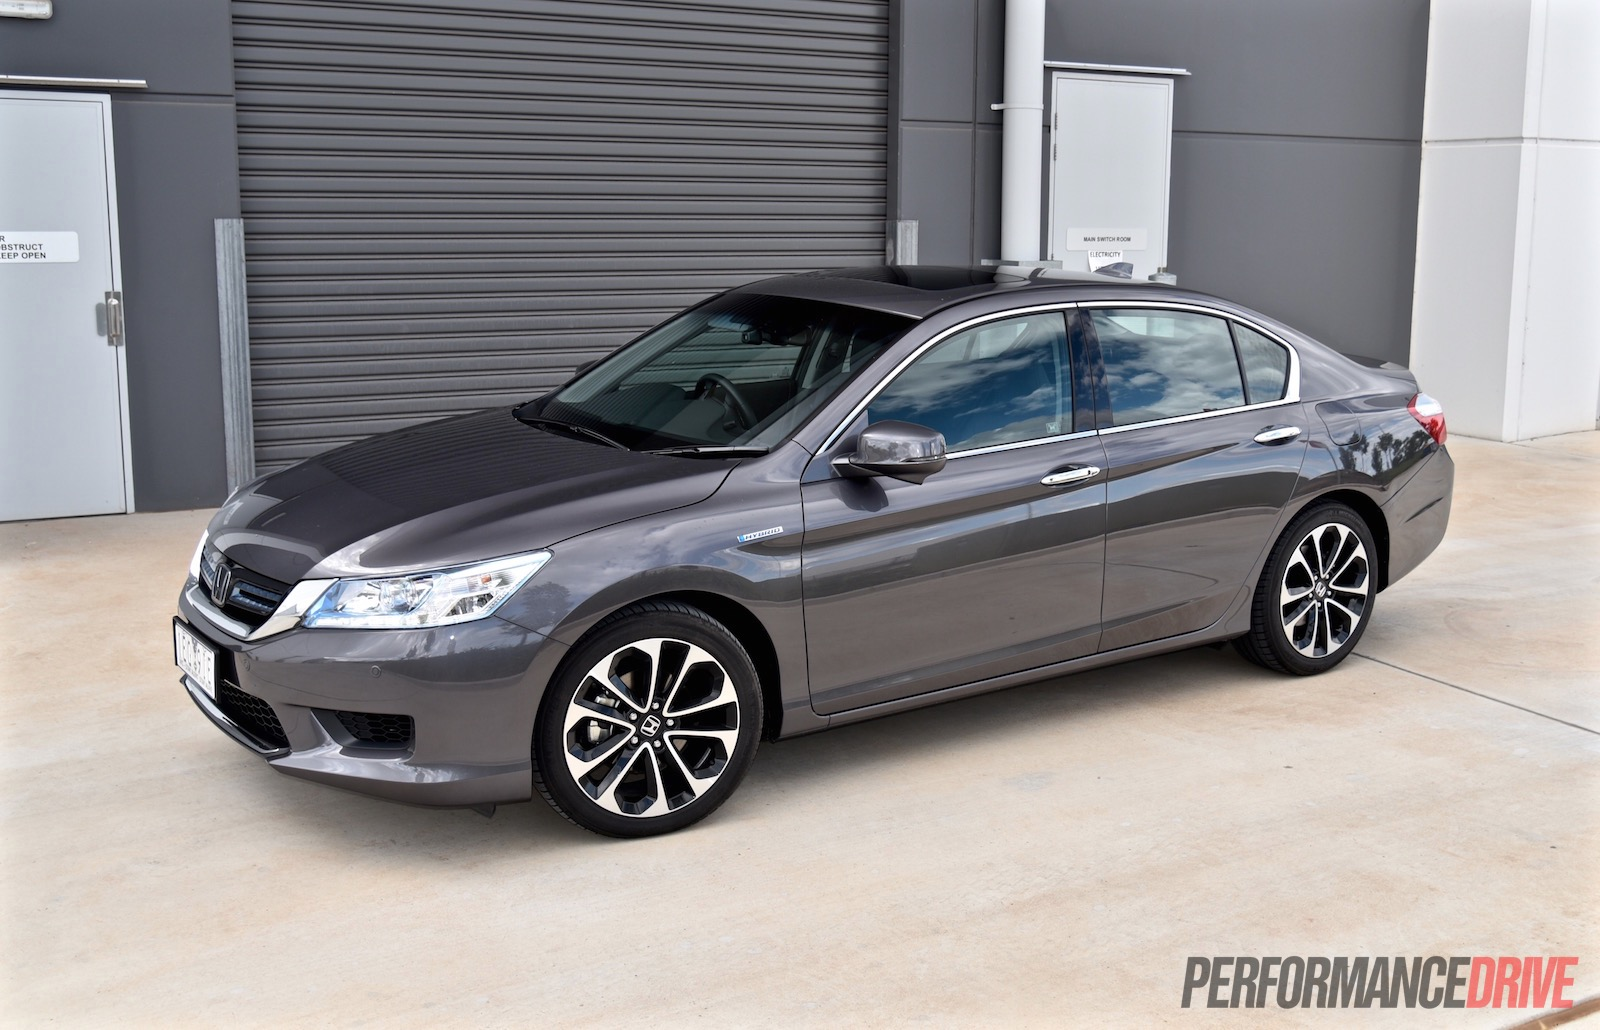 Honda accord sport hybrid review video performancedrive for Honda accord sport price